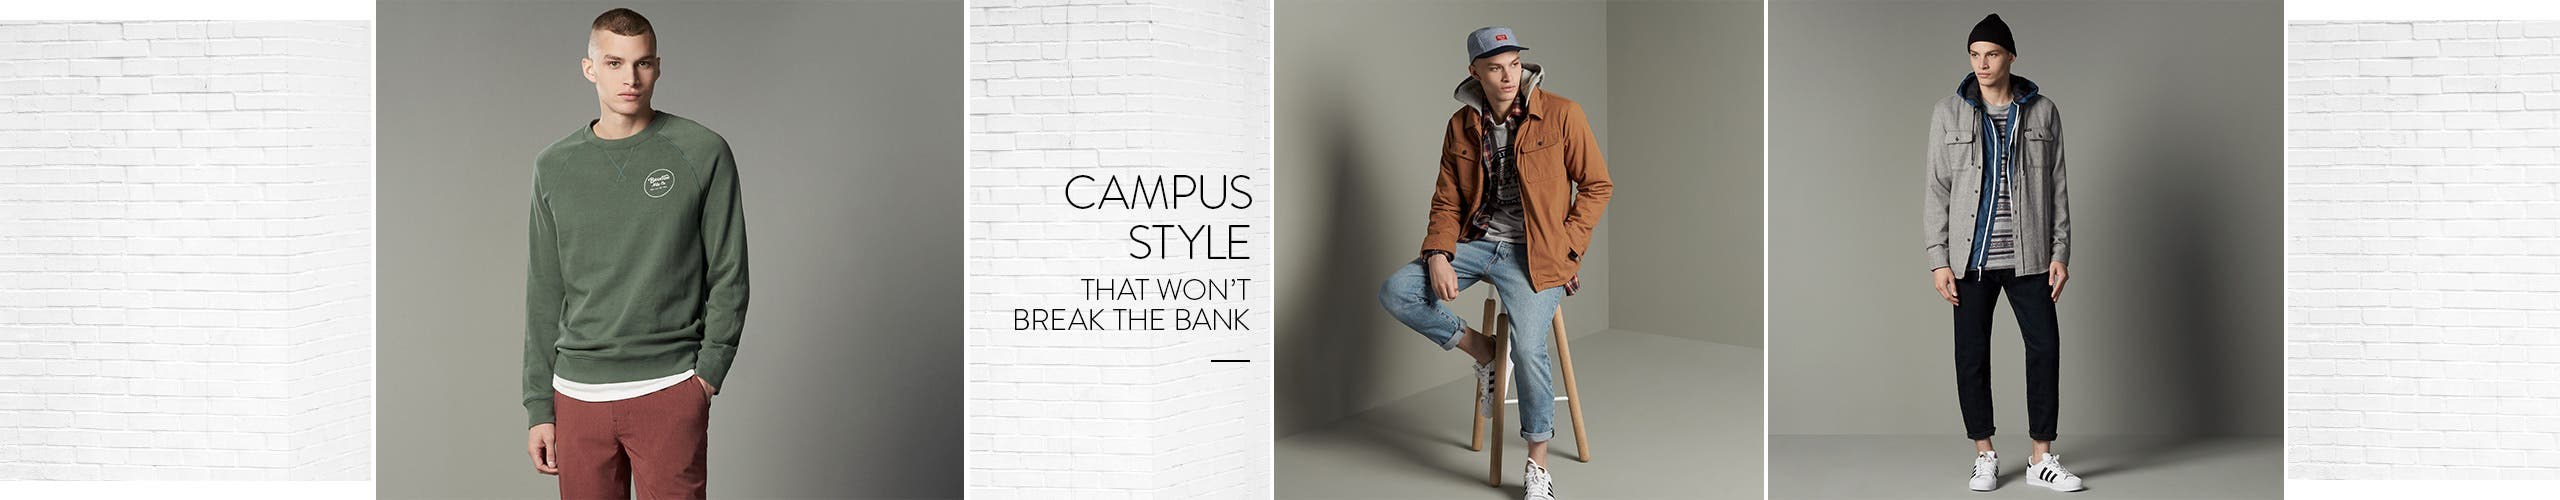 Campus style for men that won't break the bank.